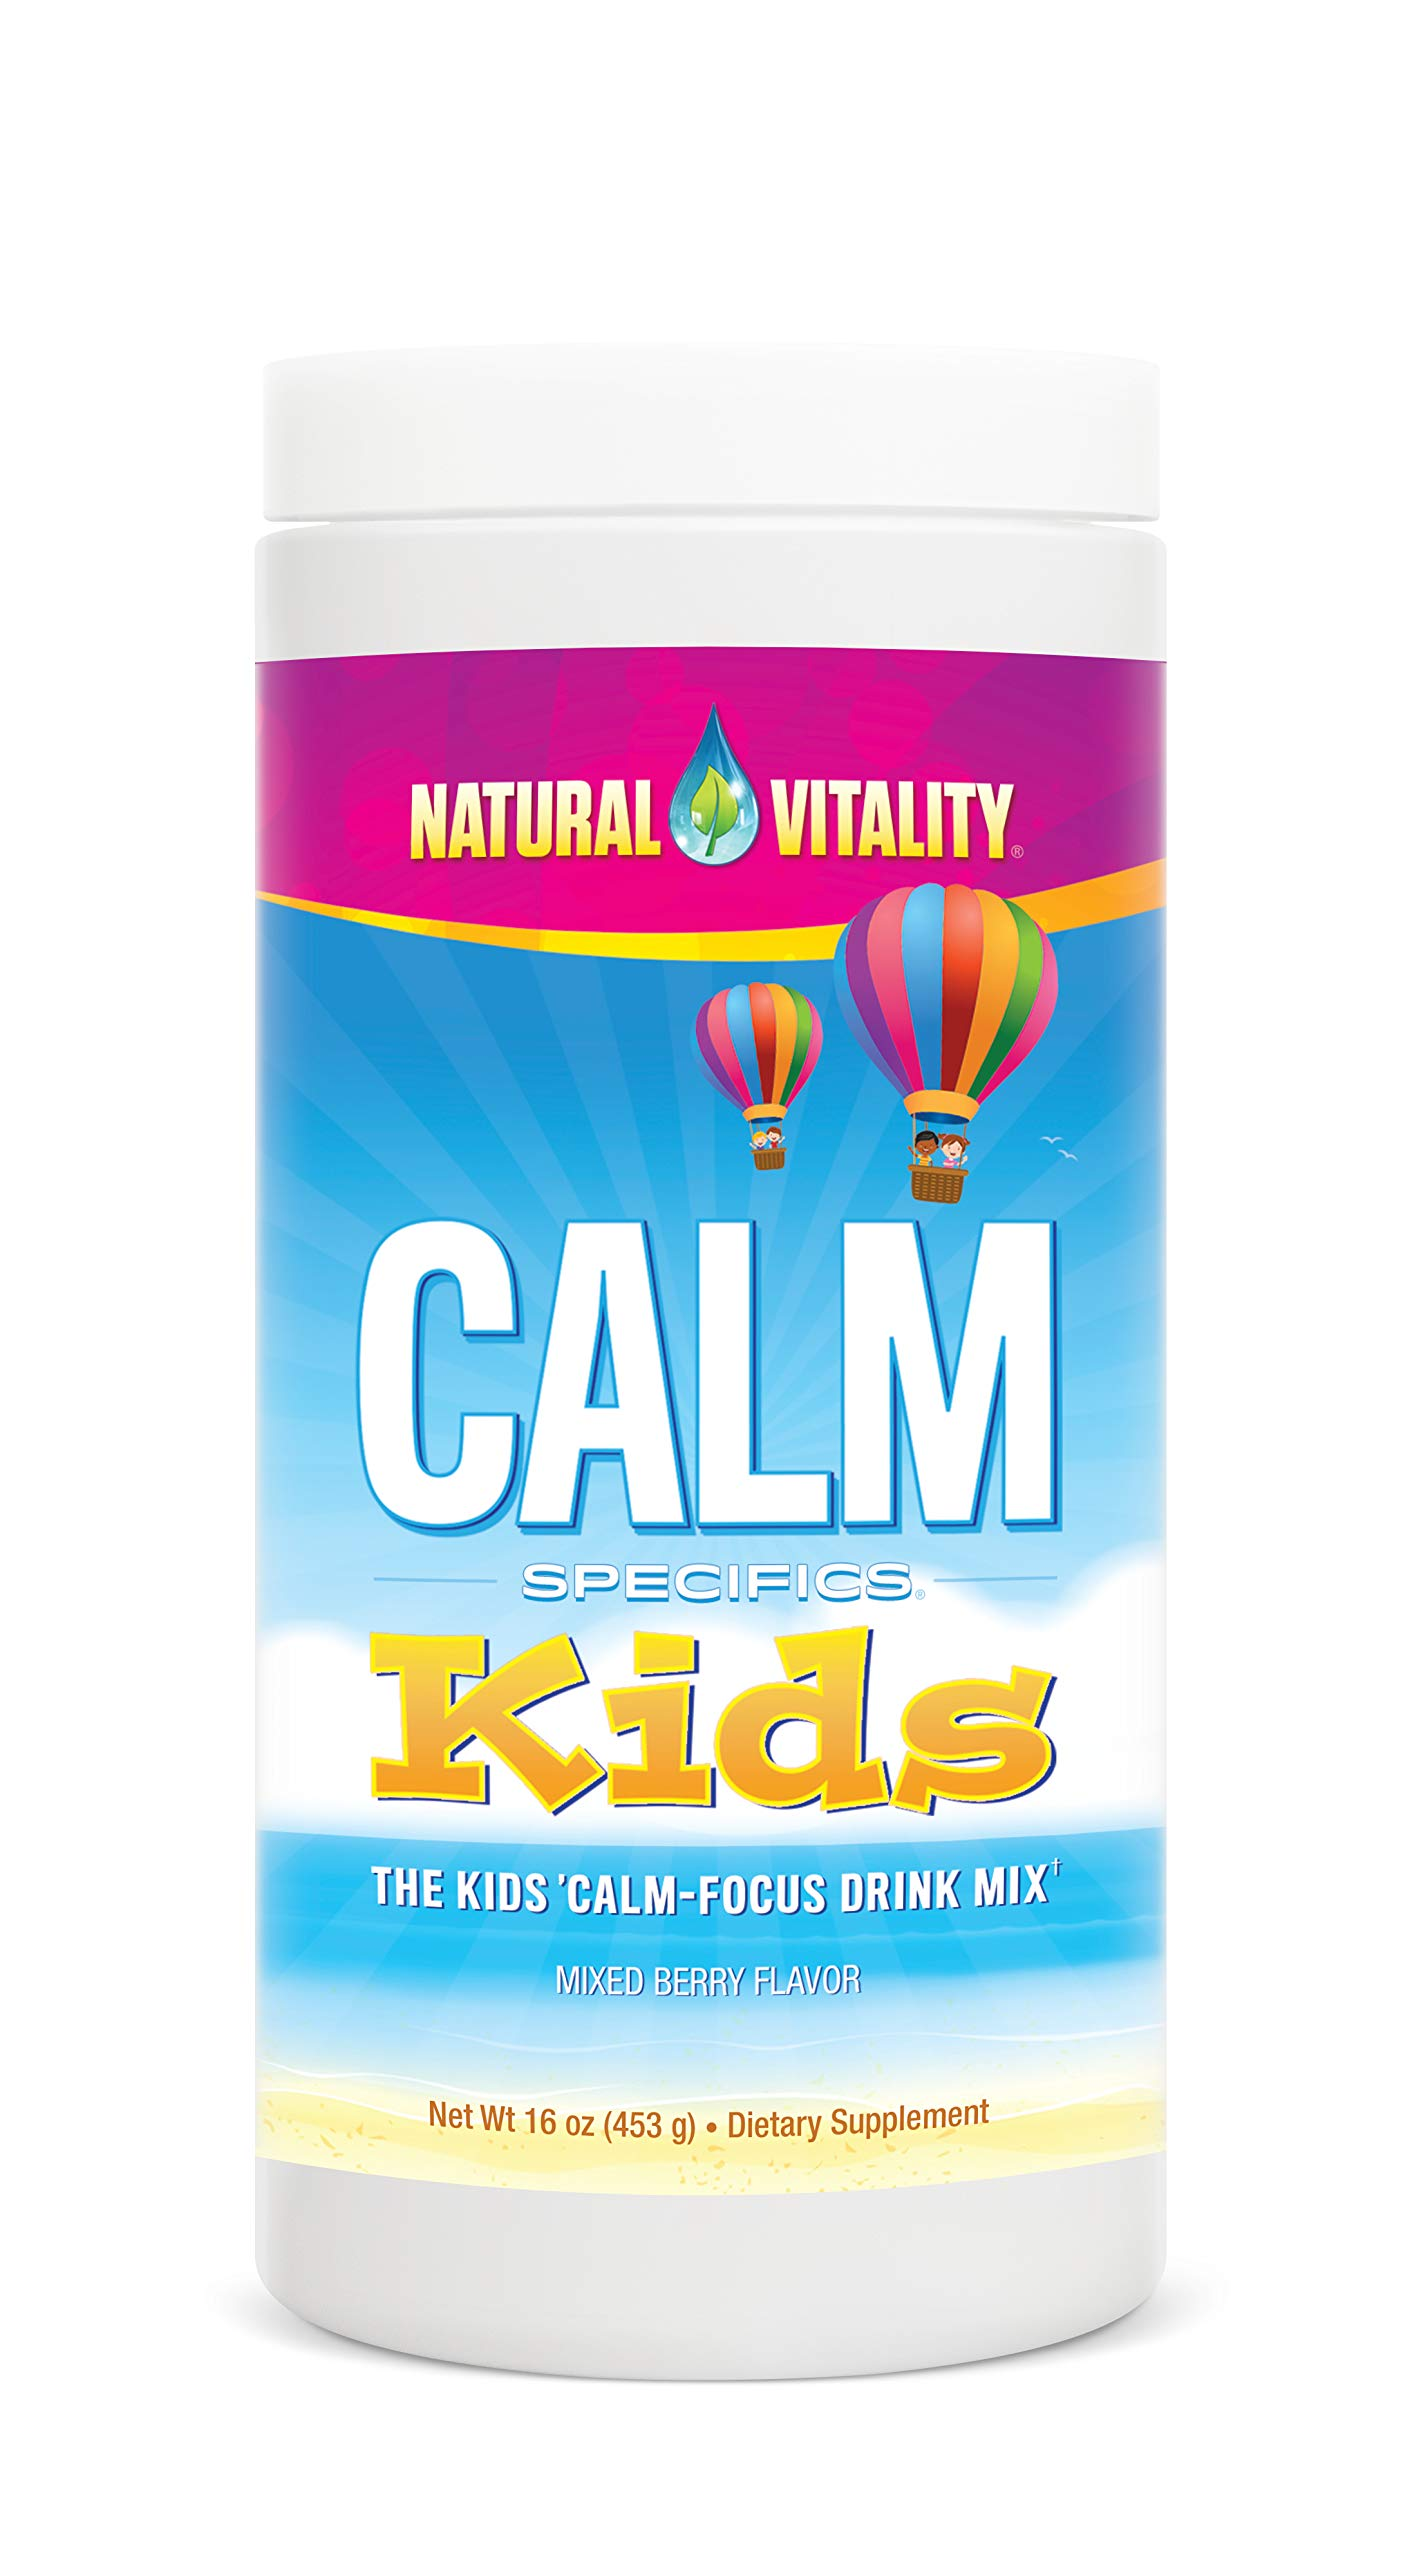 Natural Vitality Calm Specifics, Kids Magnesium Dietary Supplement Powder, Mixed Berry Flavor - 16 Ounce by Natural Vitality